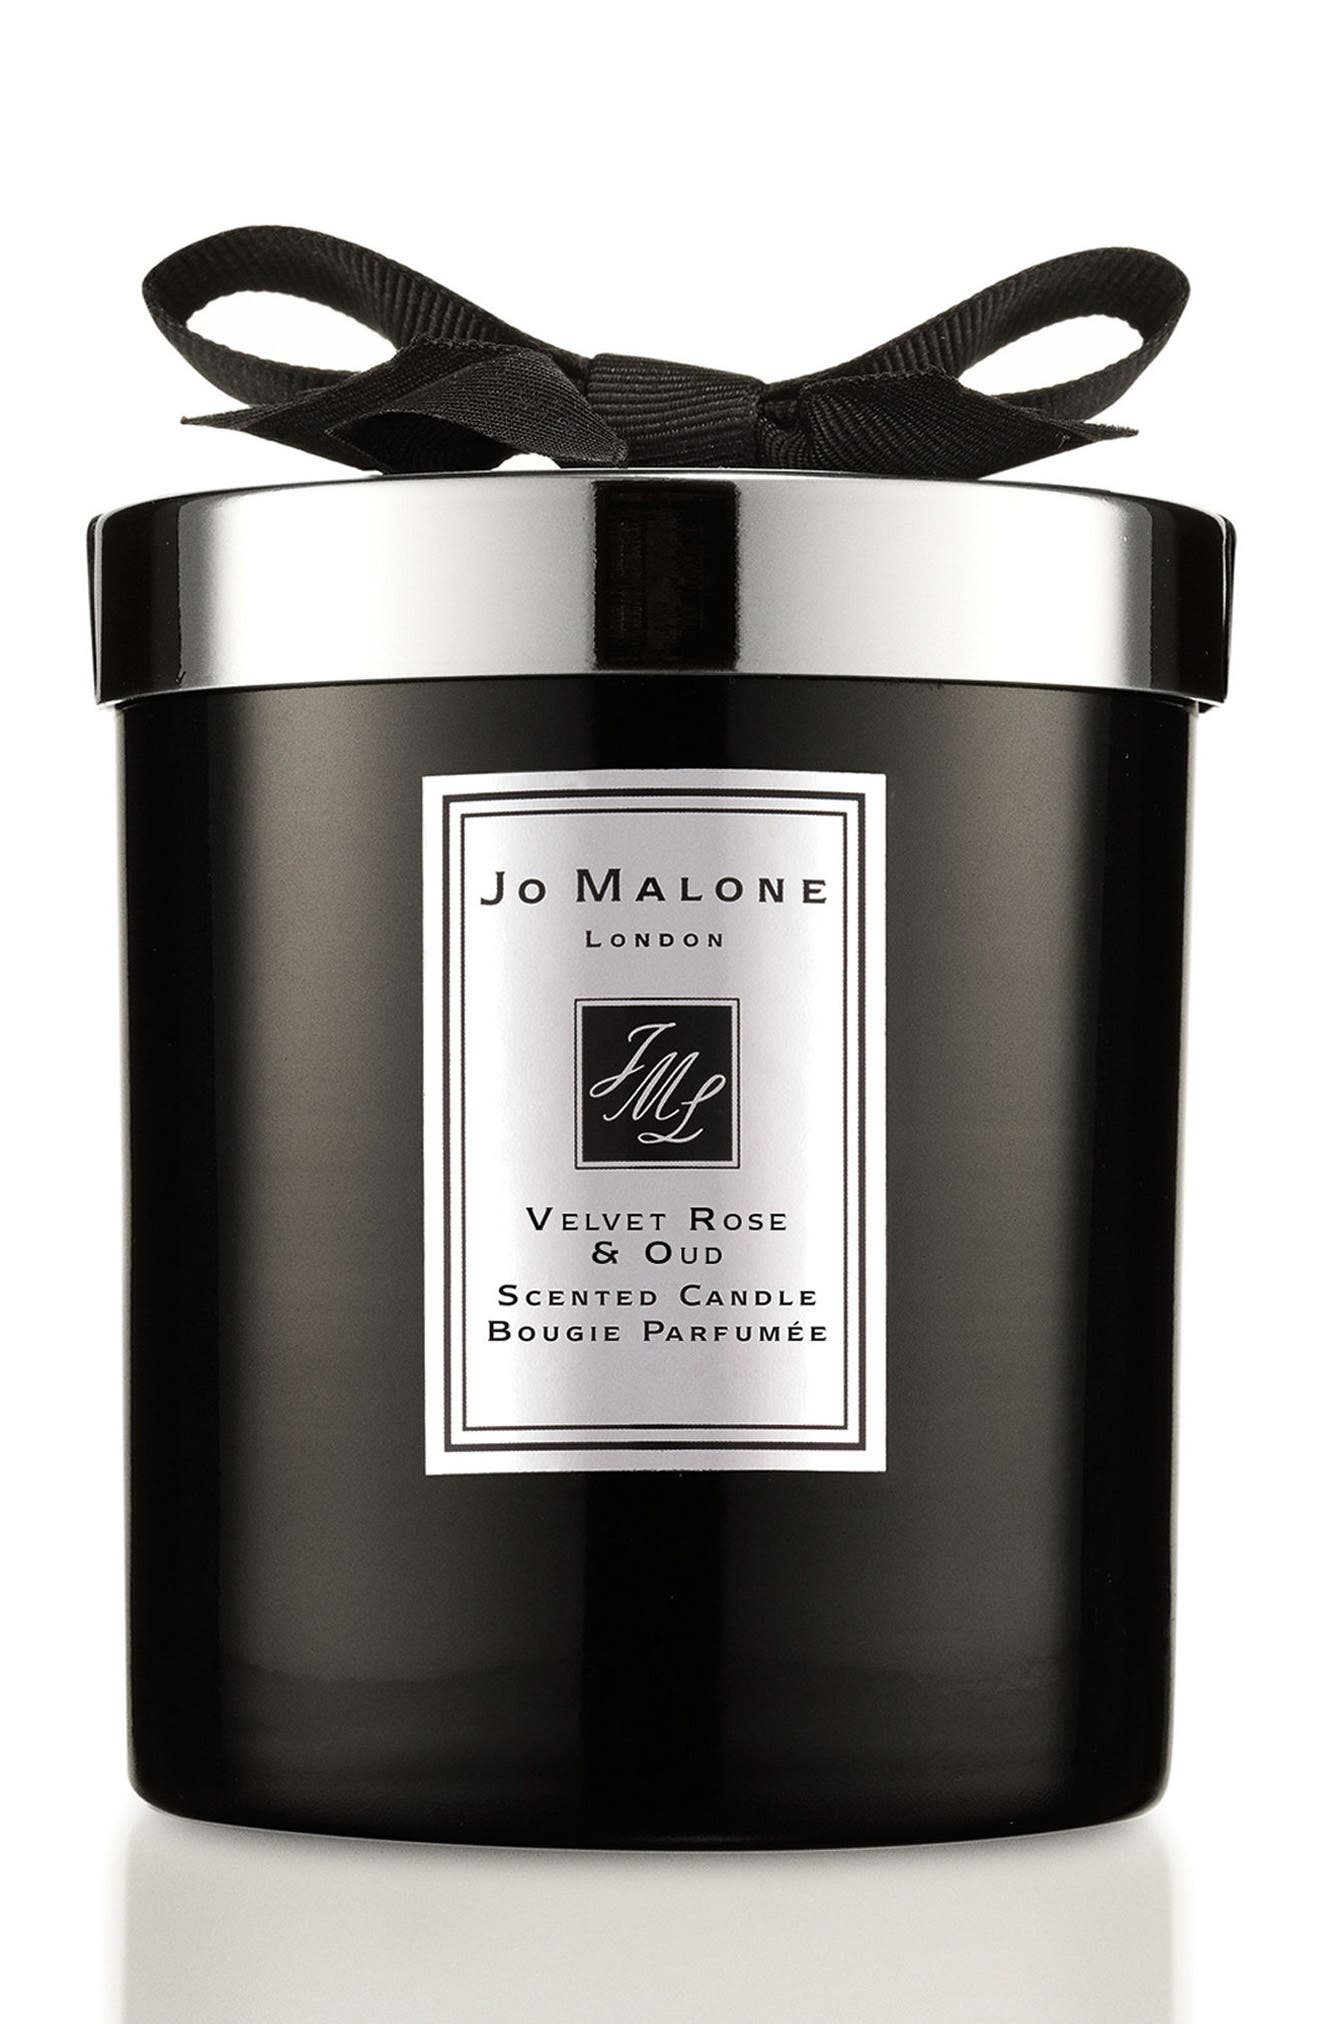 Jo Malone™ Velvet Rose & Oud Home Candle